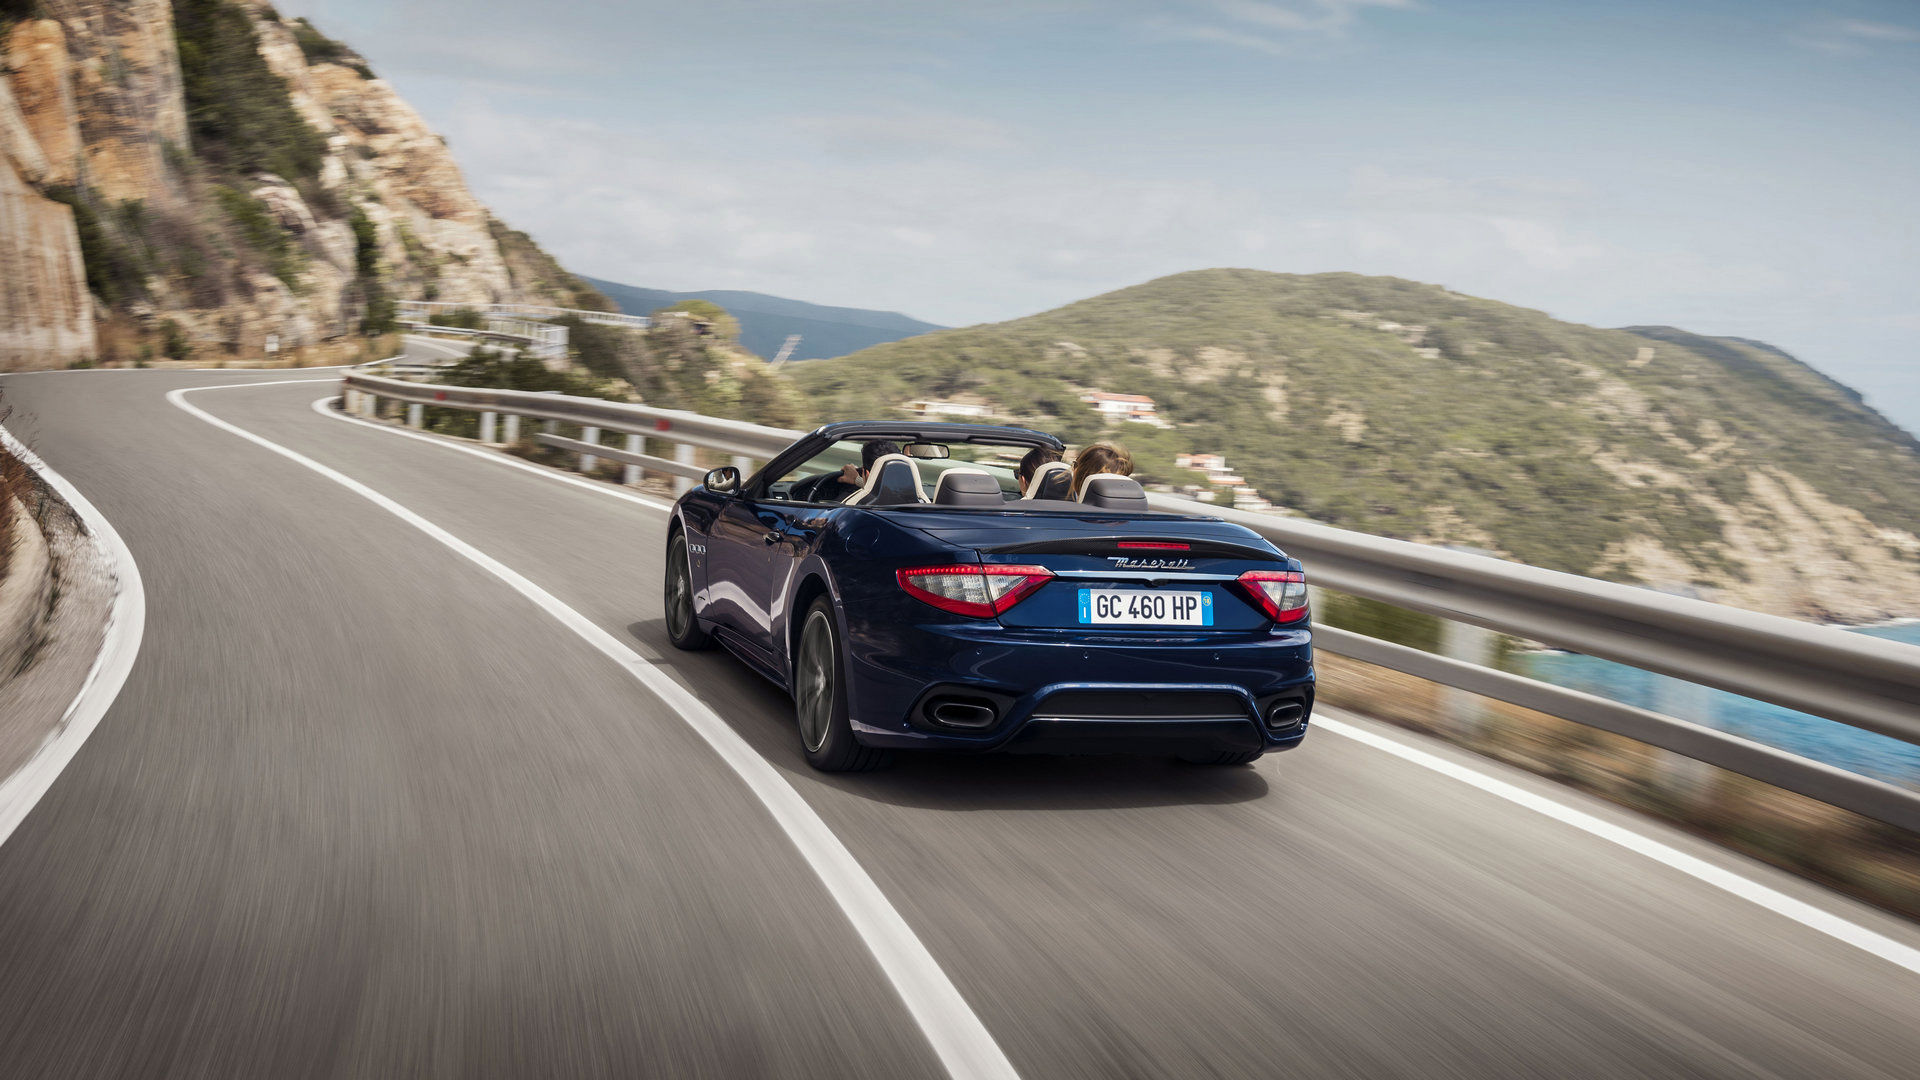 Maserati GranCabrio - running on the road